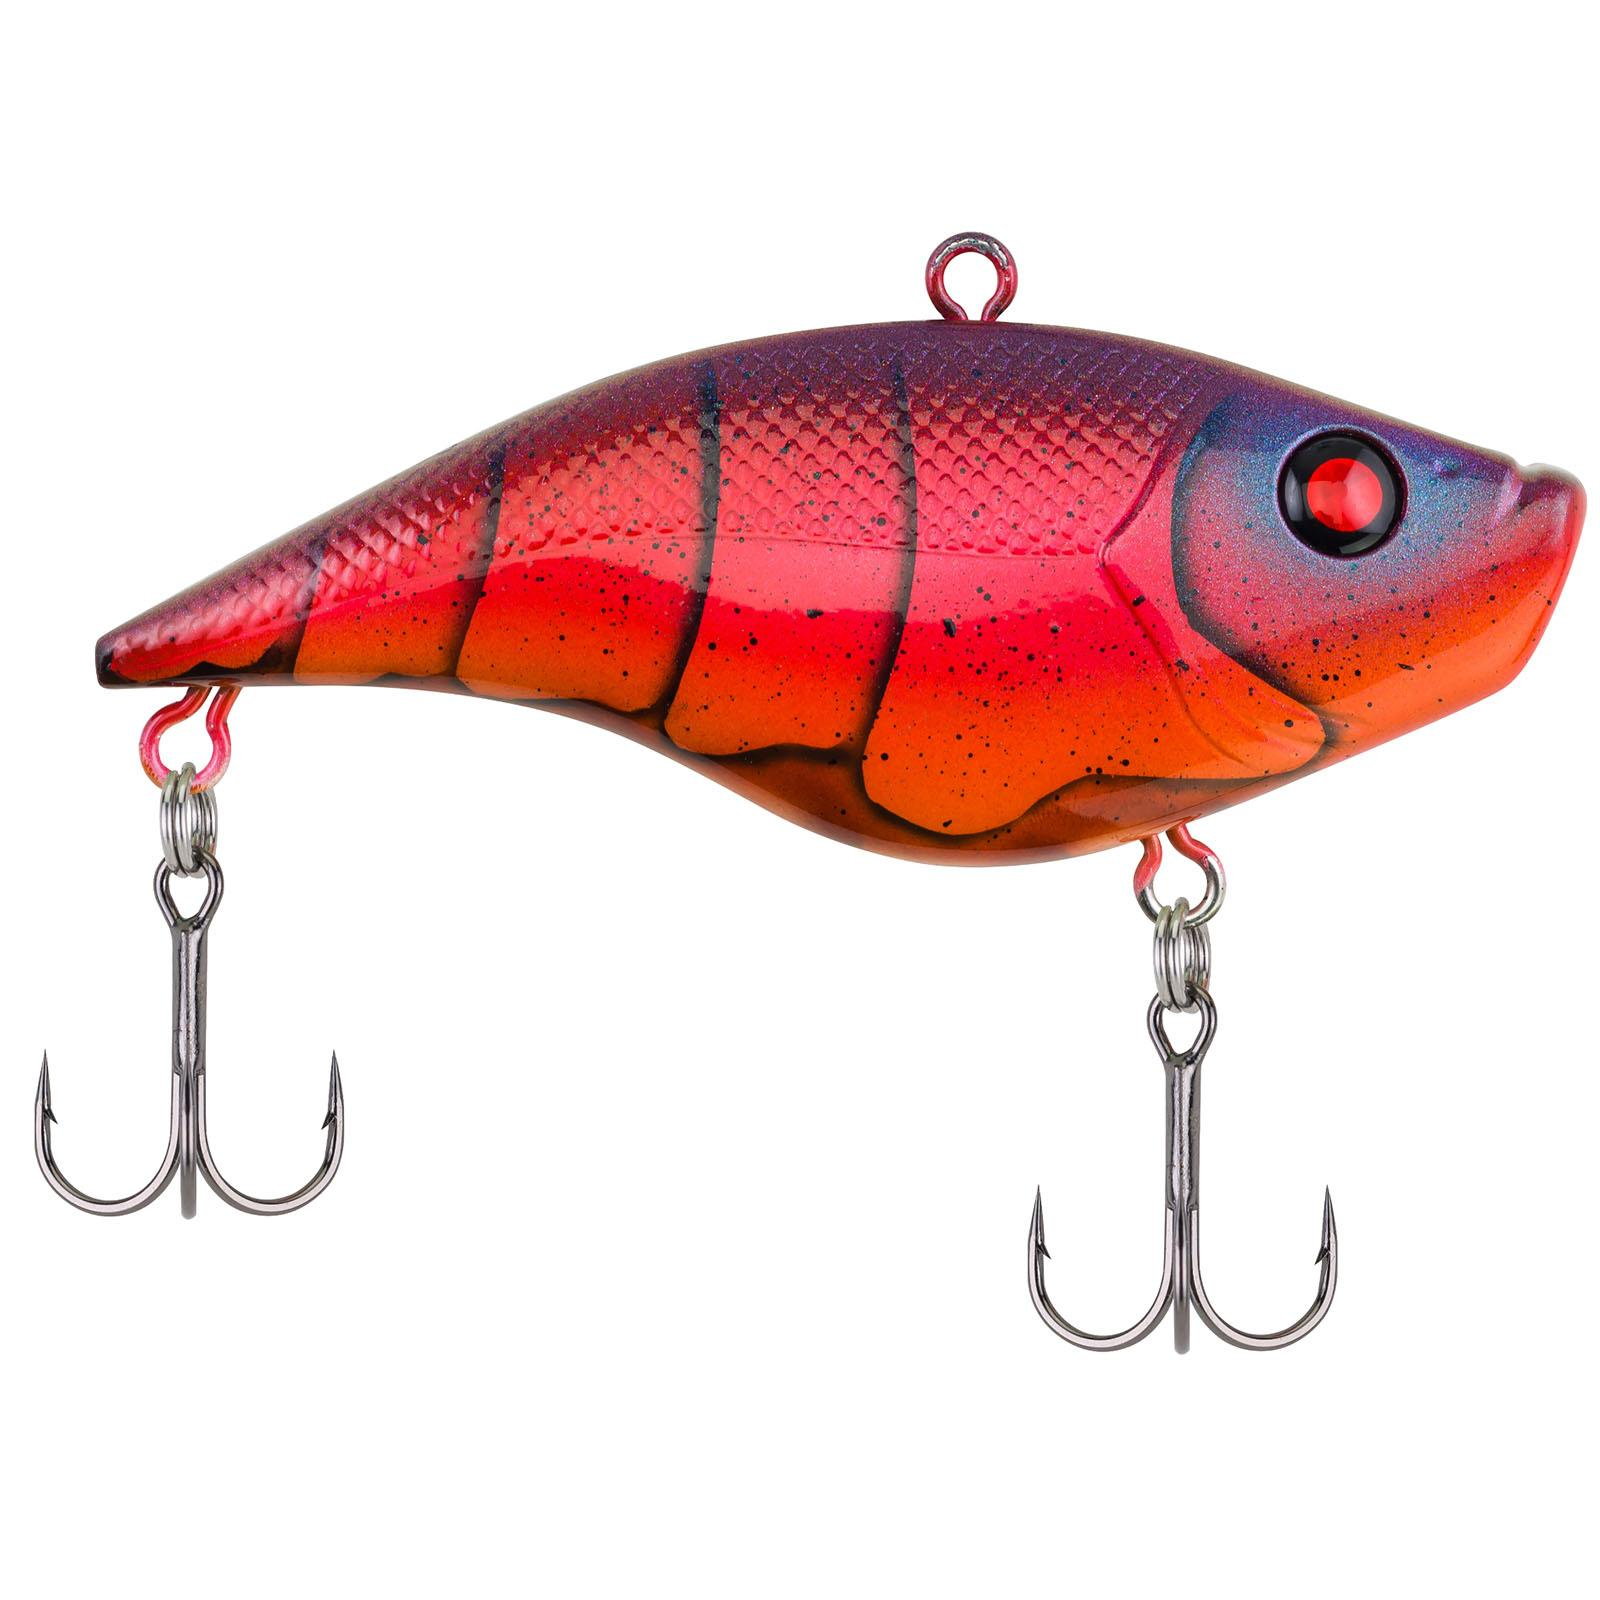 Special Red Craw